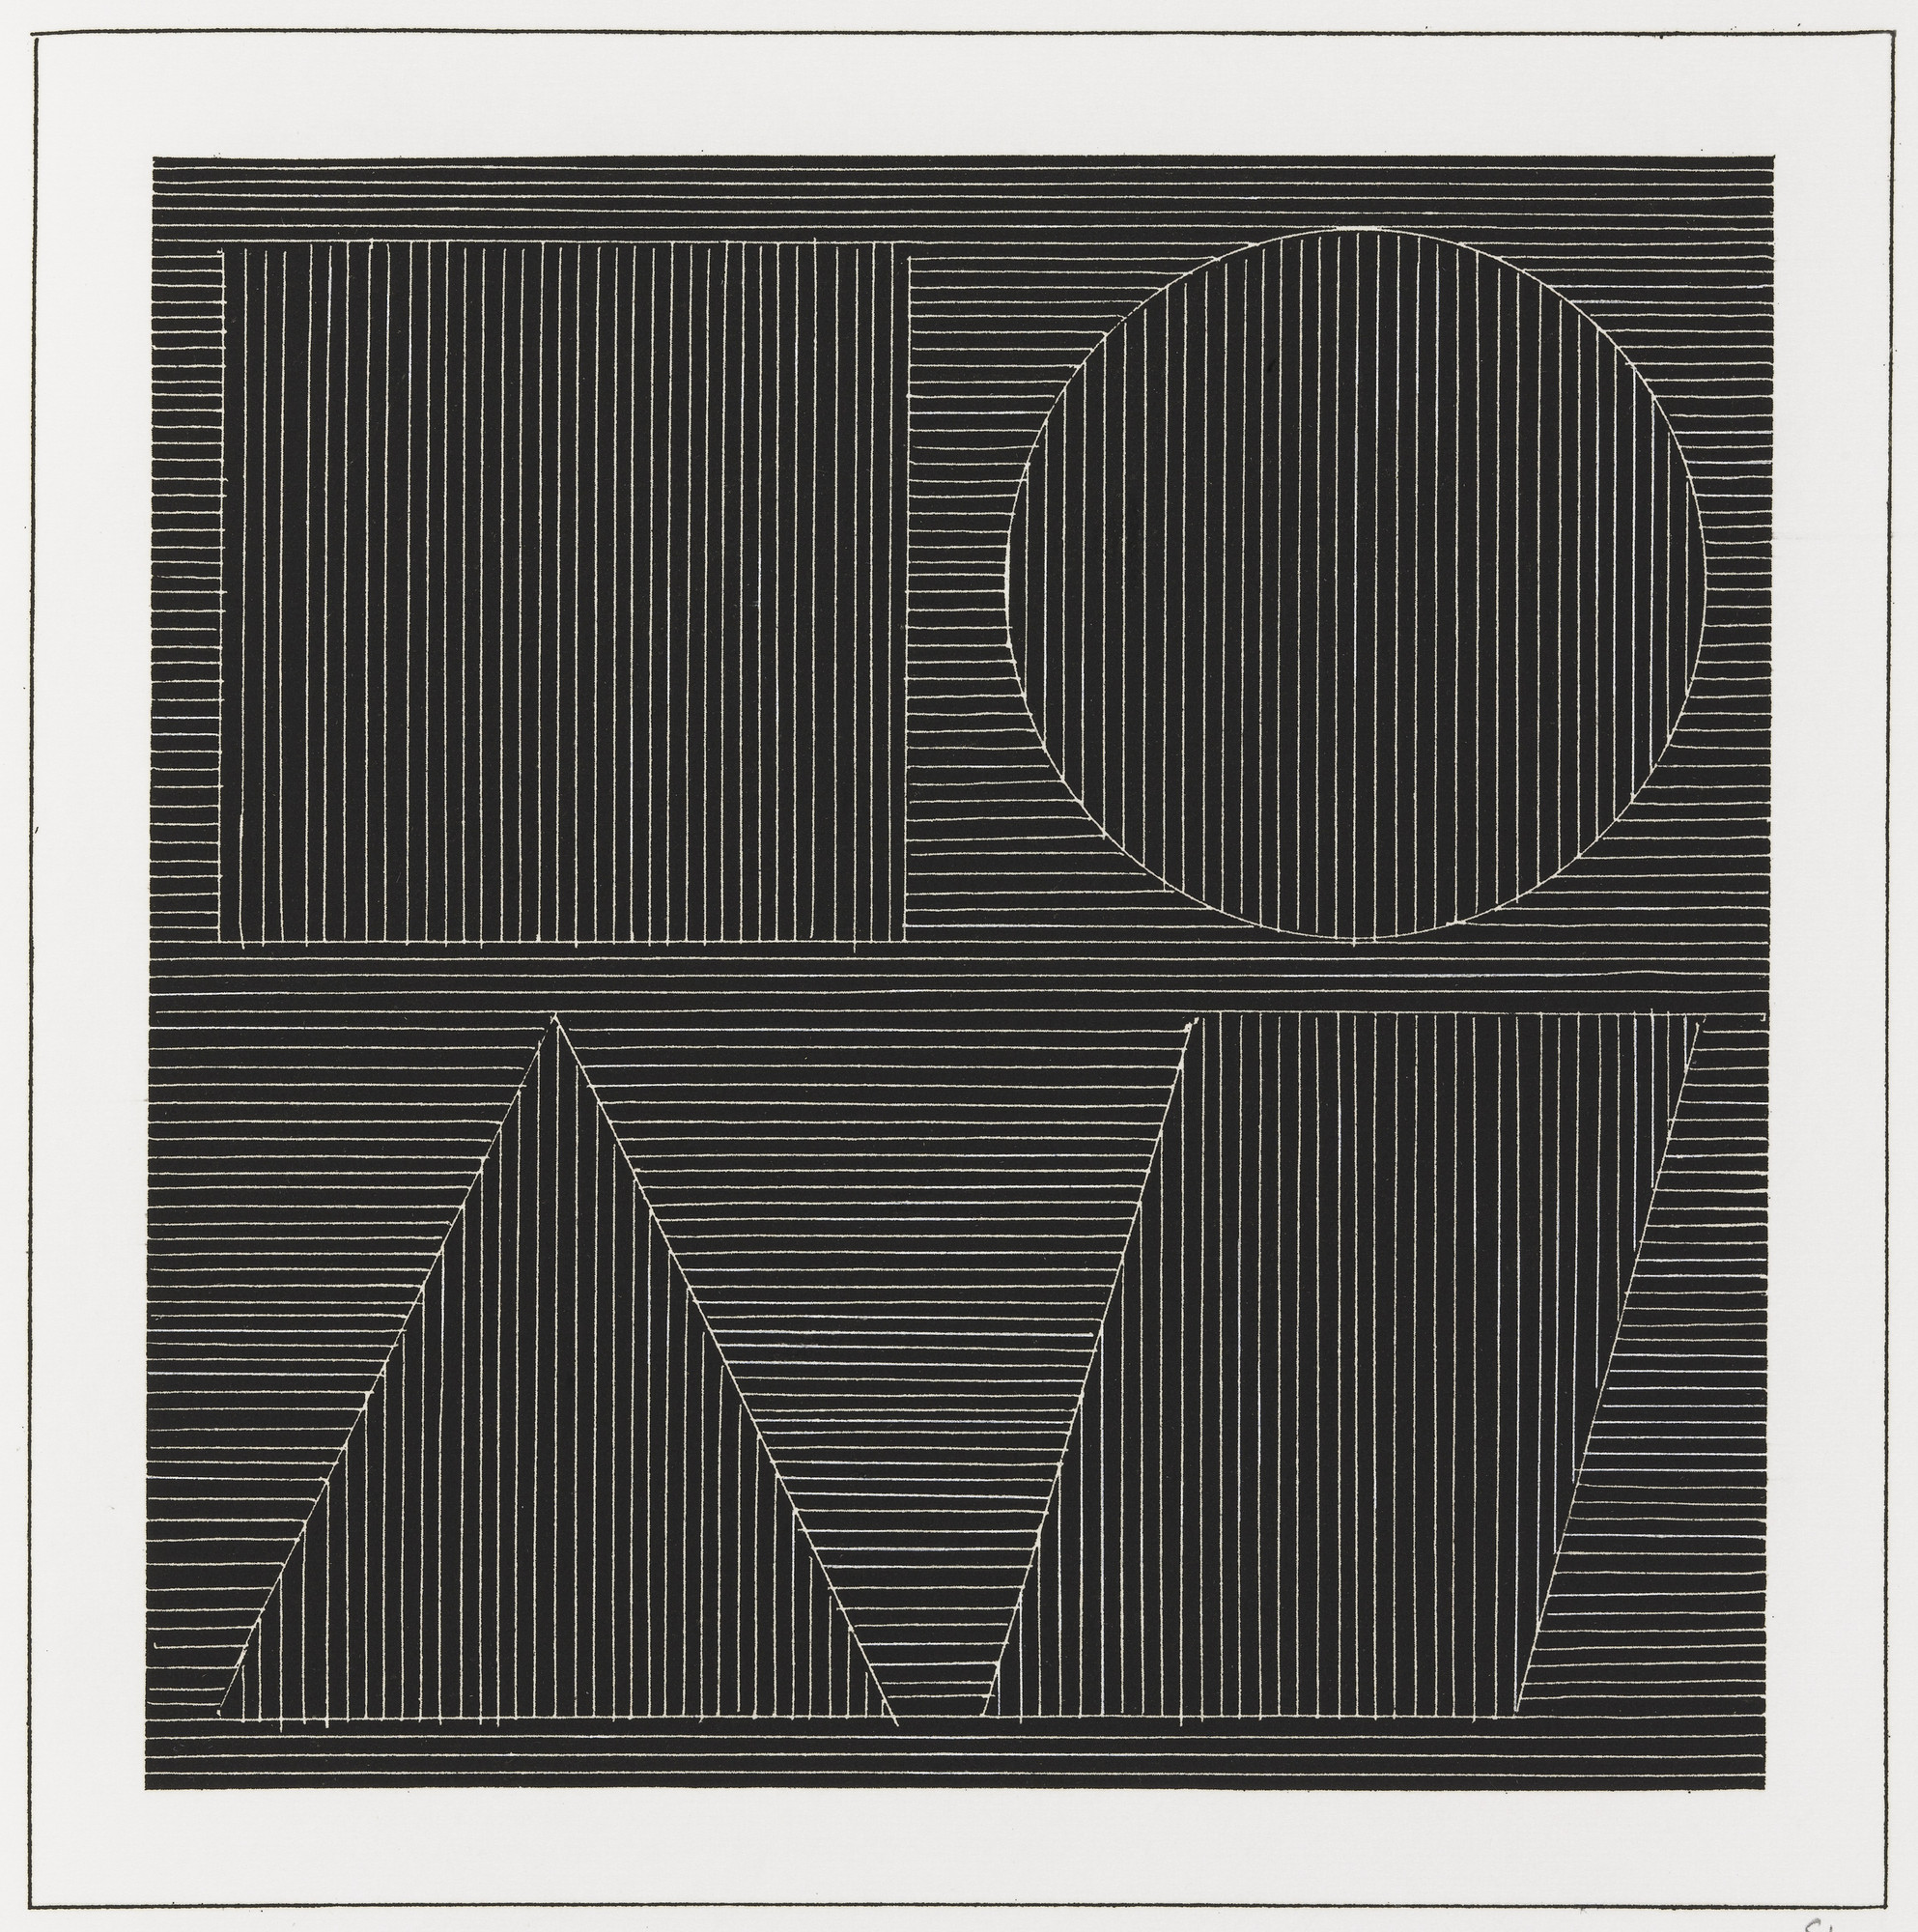 Sol LeWitt. Plate (folio 45) from Six Geometric Figures and All Their Combinations, Volume I. 1980